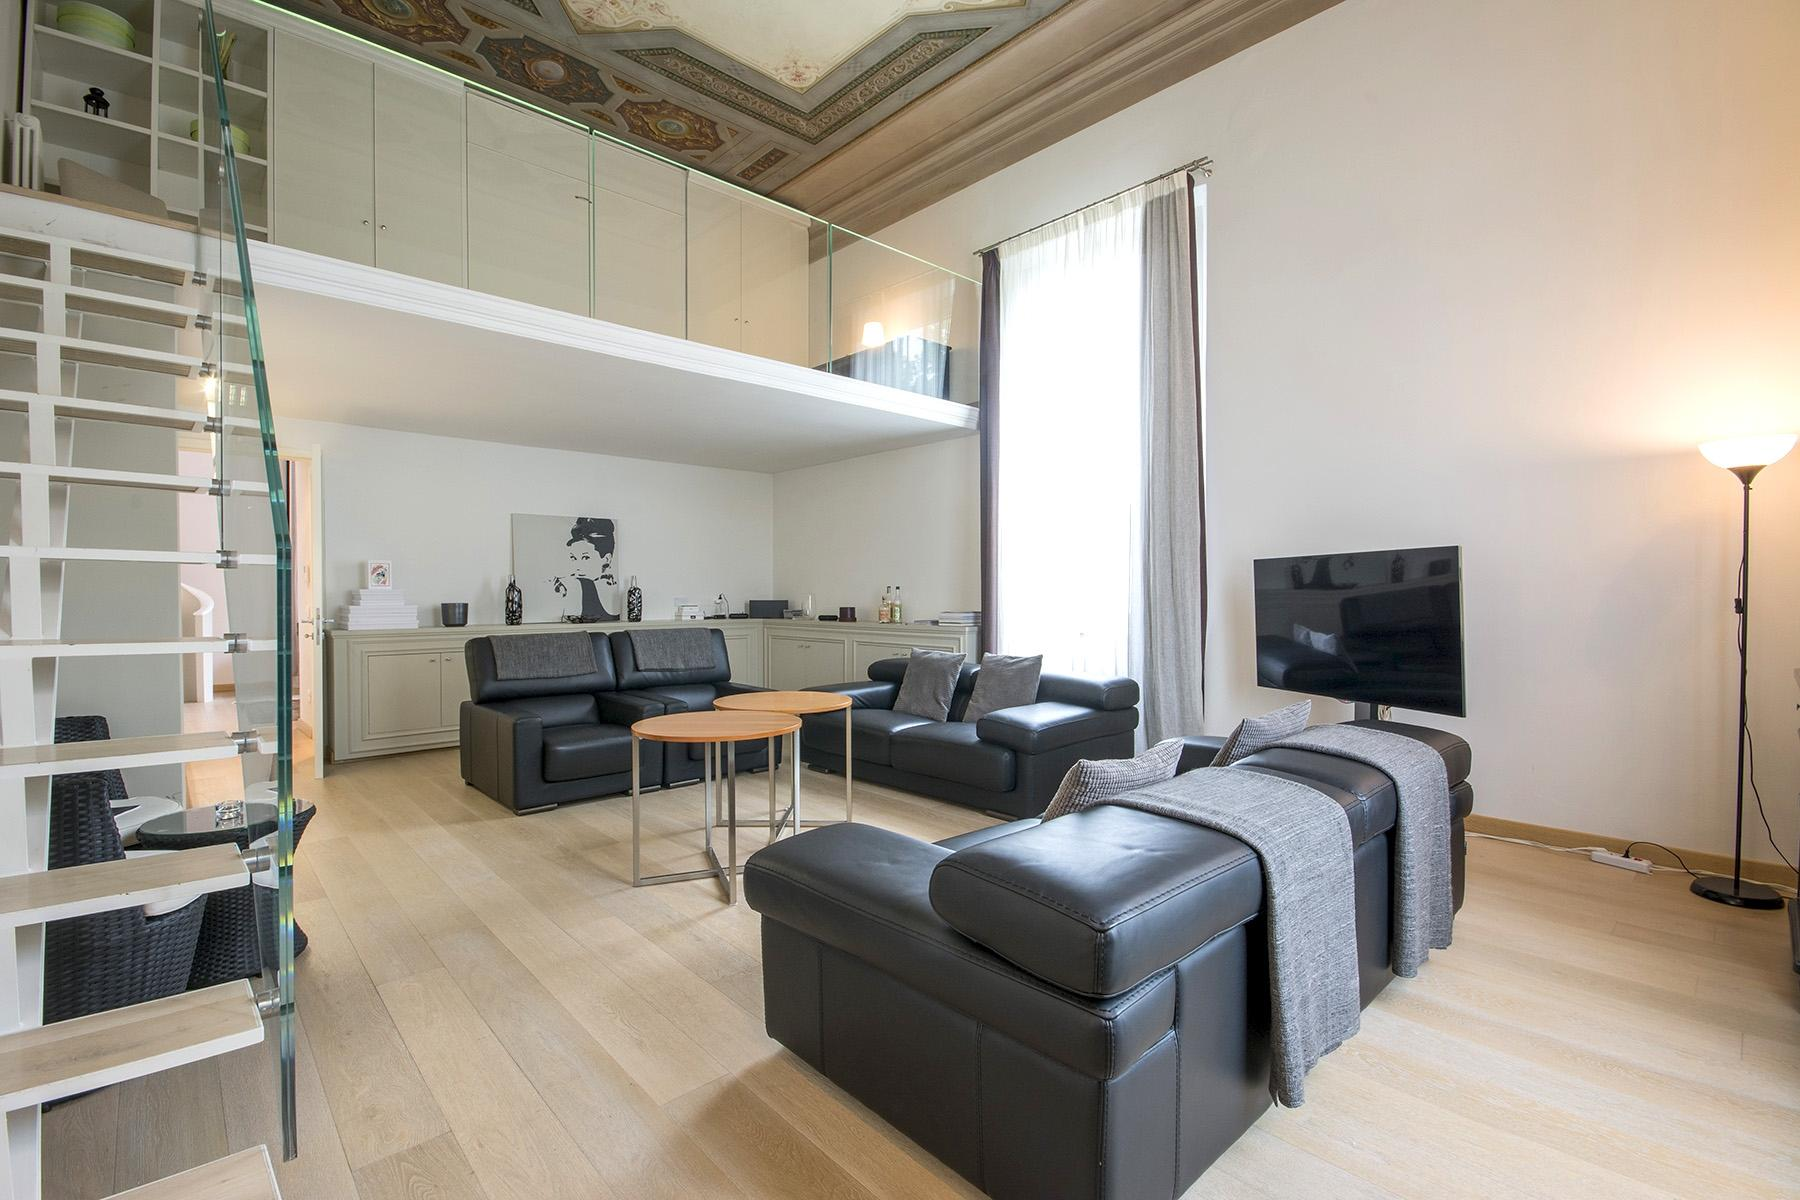 Lovely modern apartment in the Oltrarno district - 2